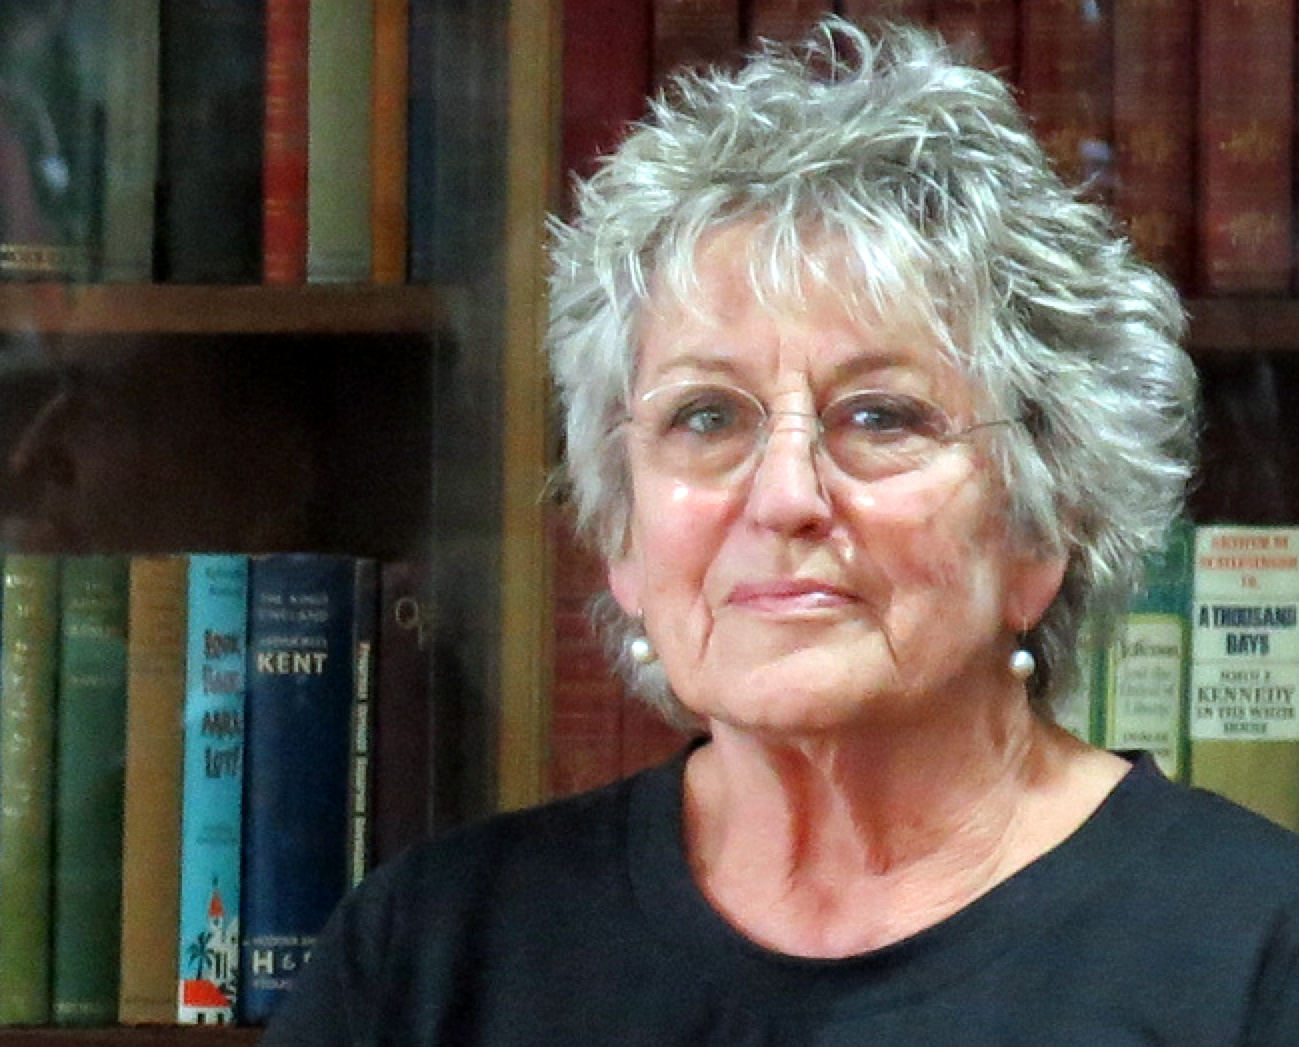 Prague Writers' Festival features Germaine Greer and Michael Cunningham